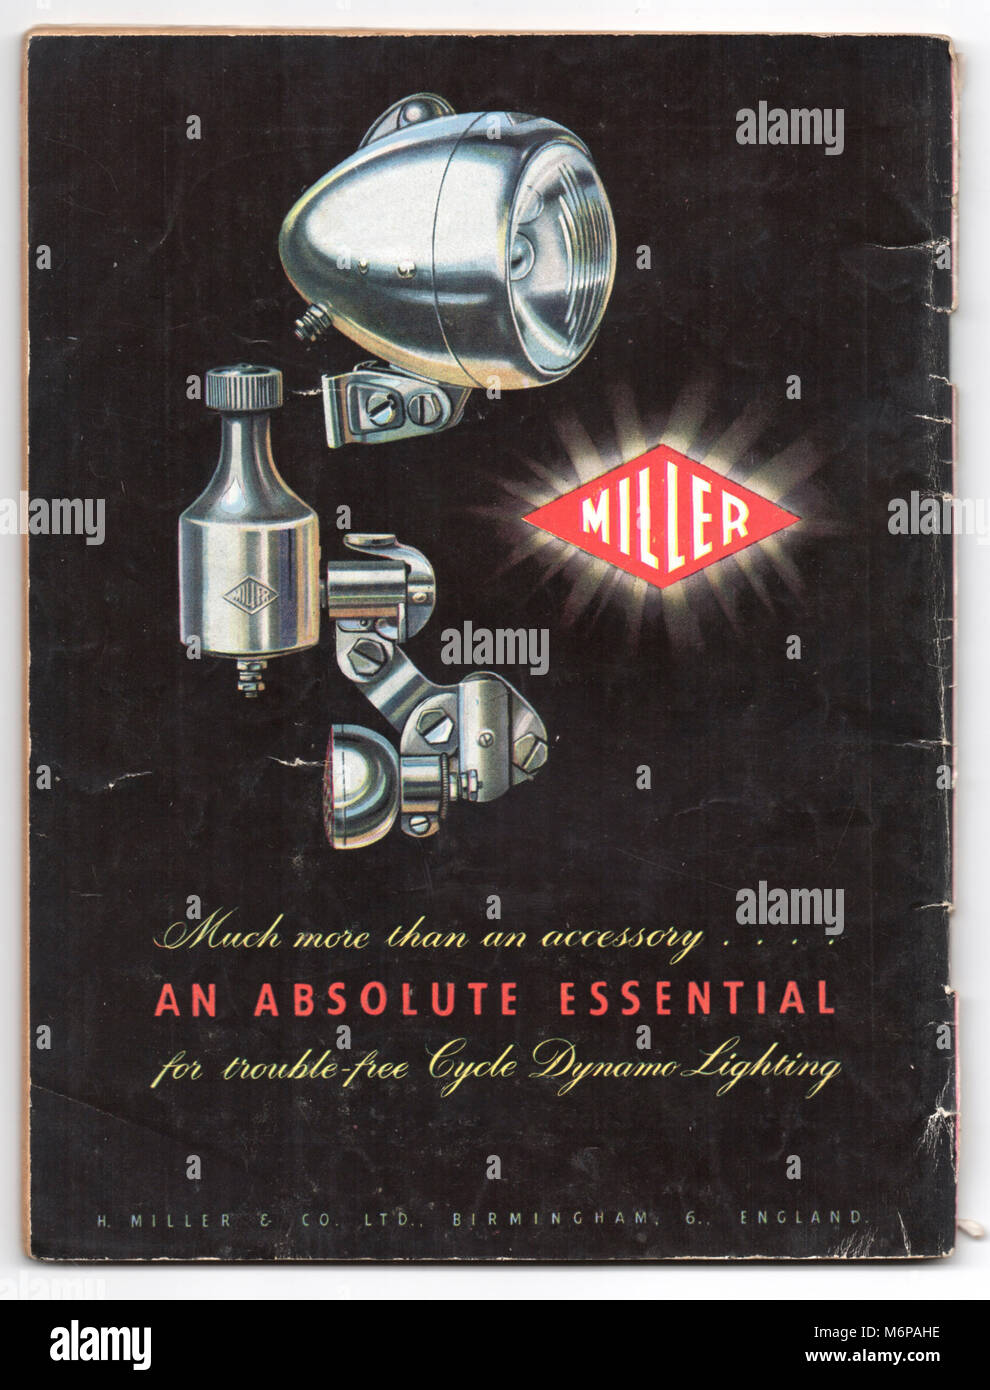 1950's advert for Miller Cycle Dynamo Lighting from the Boy's Own Paper. - Stock Image